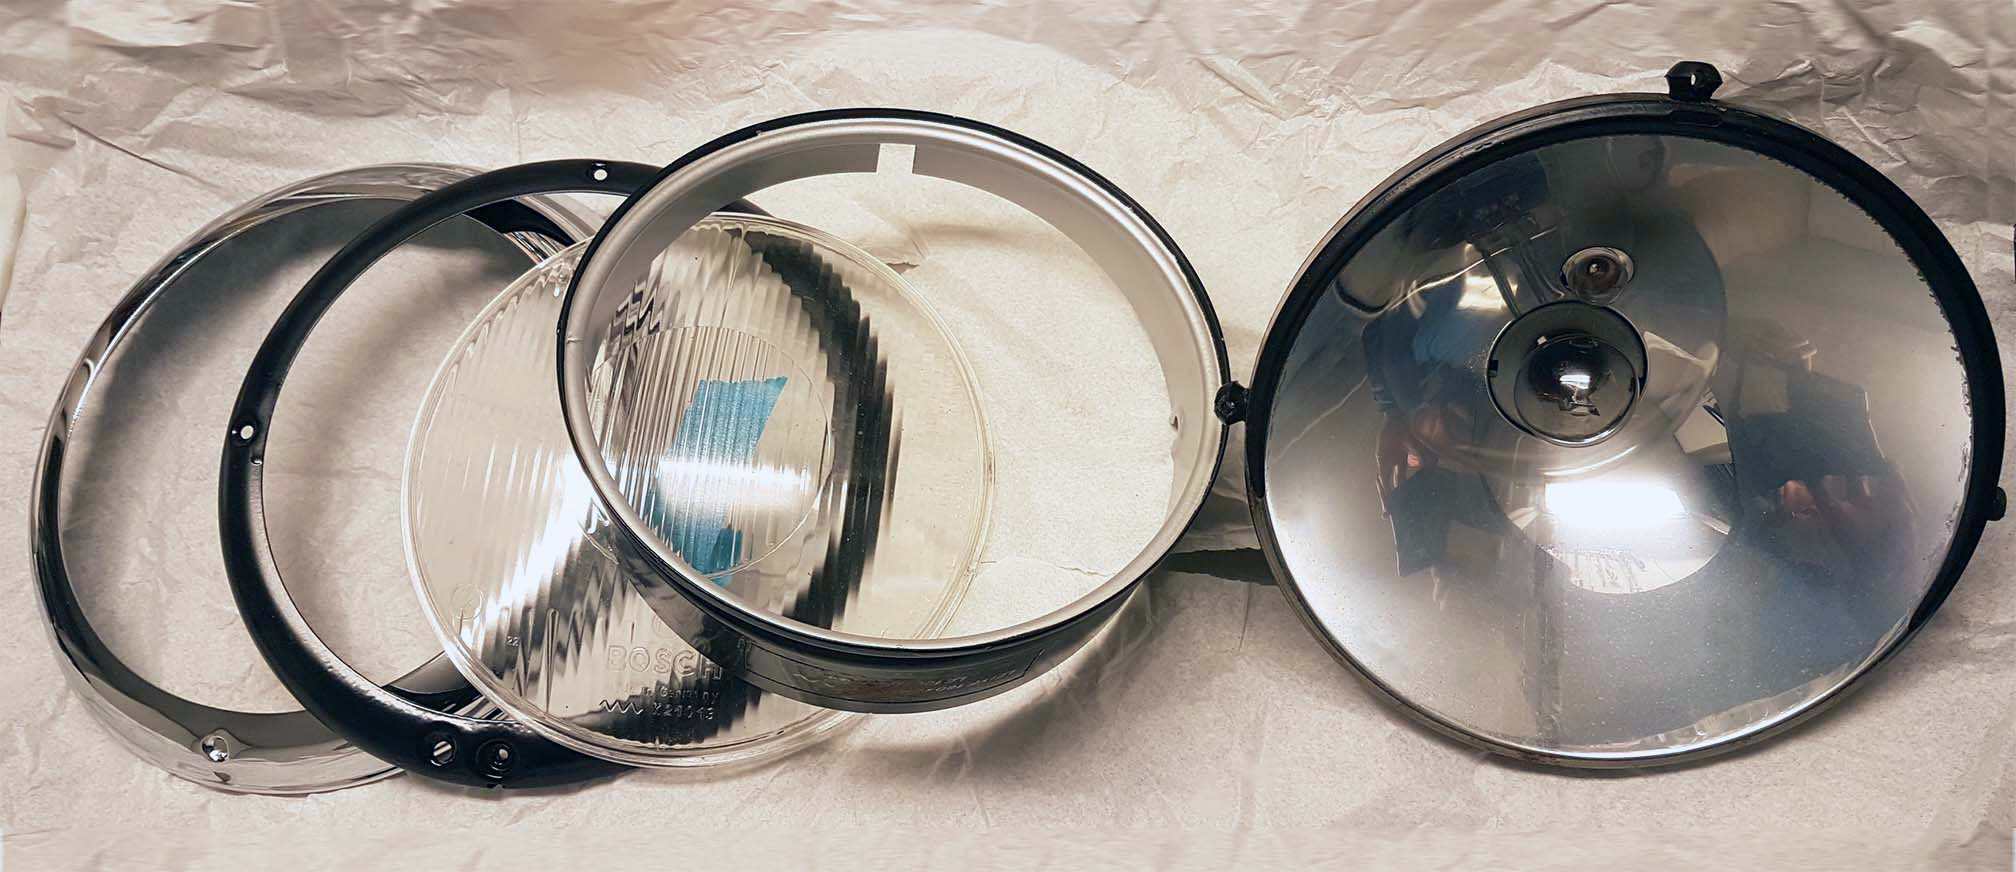 Partly restored Bosch headlights for a Mercedes-Benz Ponton model 219 -57